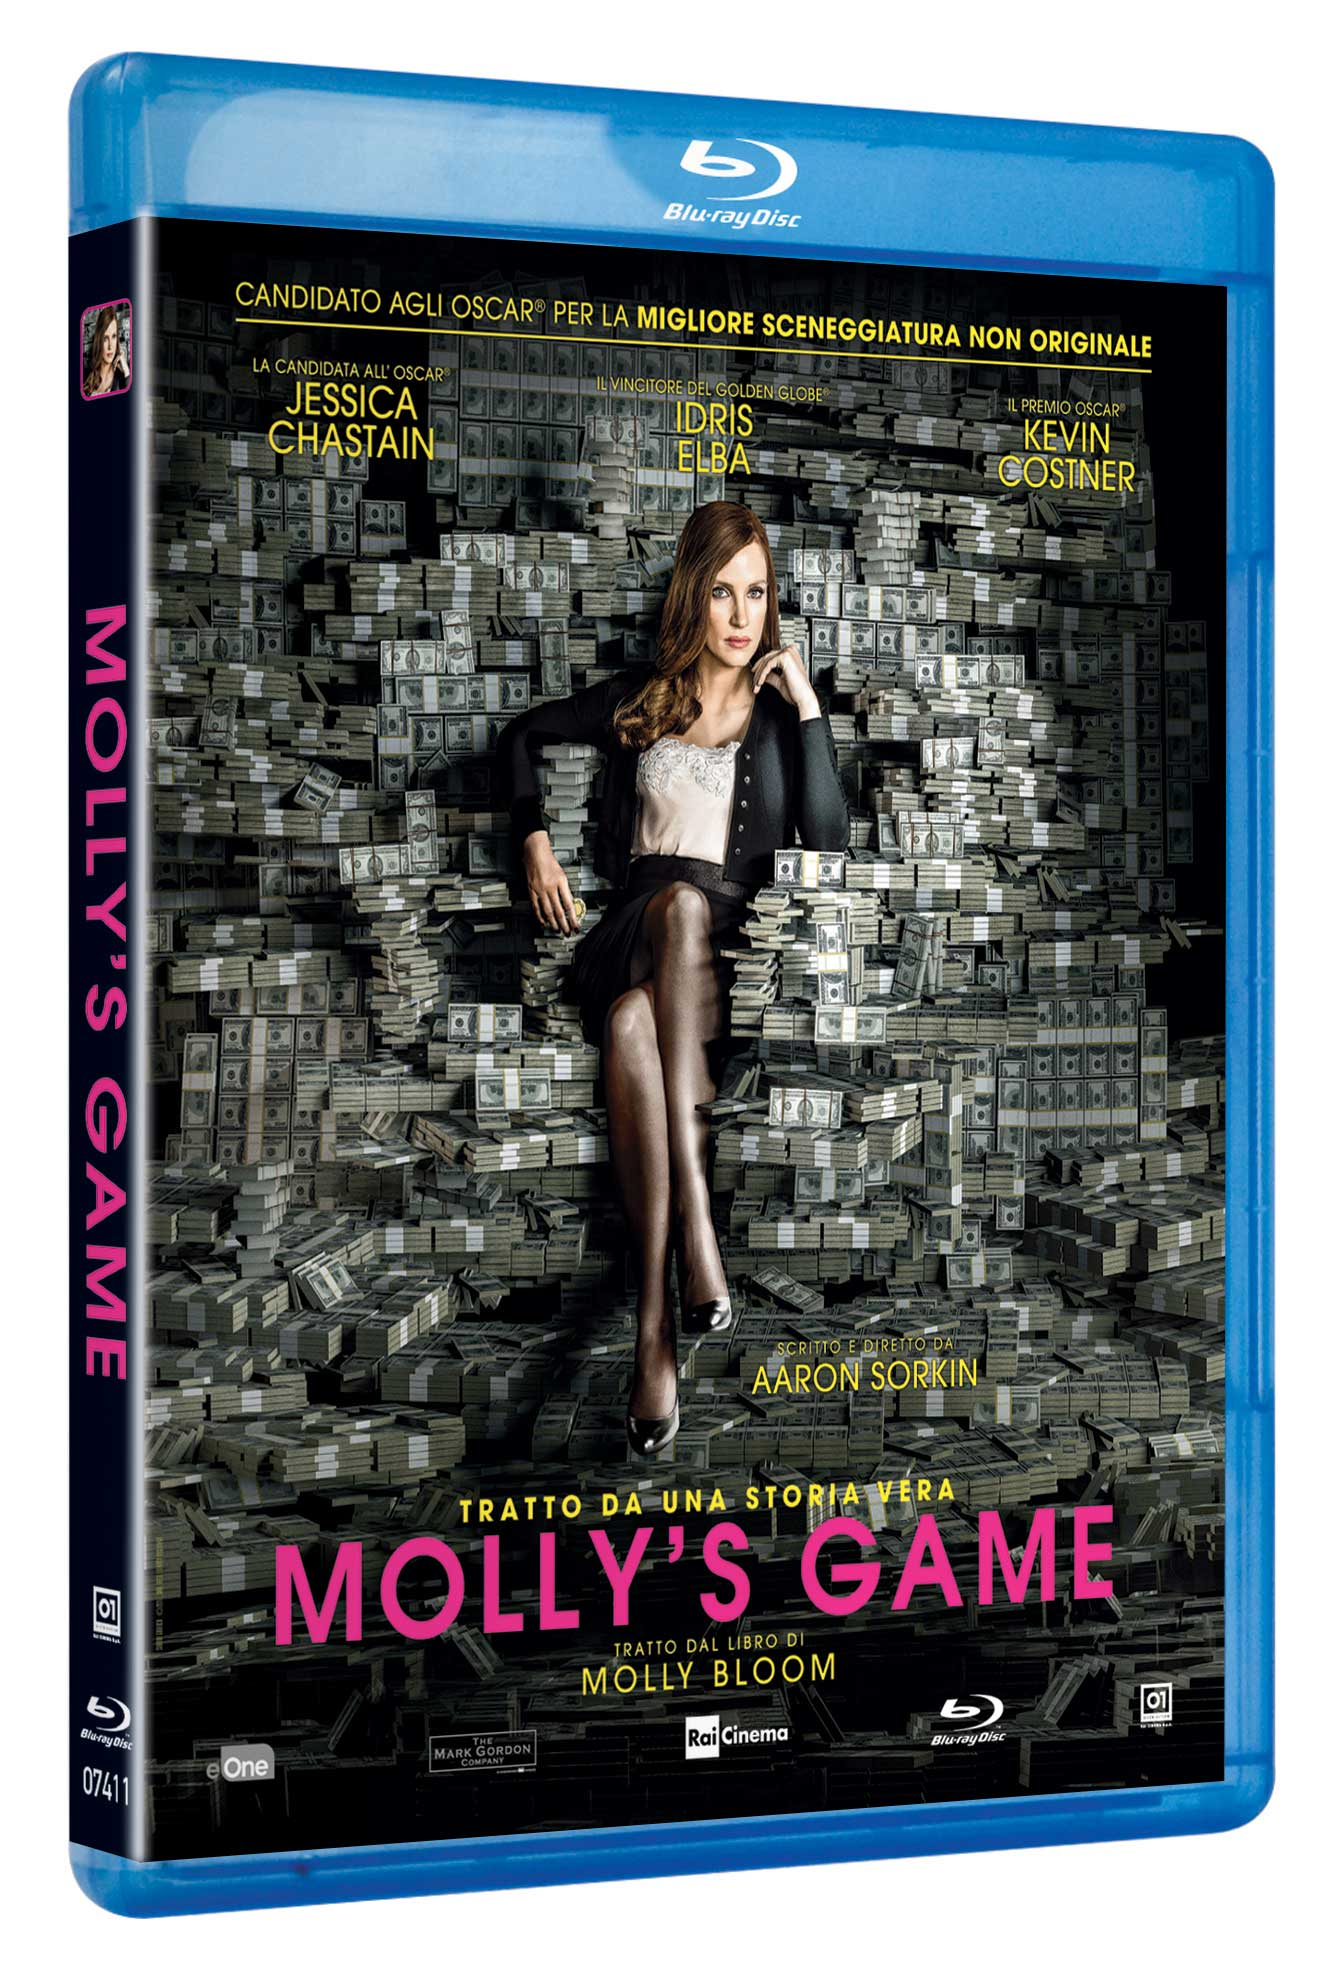 MOLLY'S GAME - BLU RAY